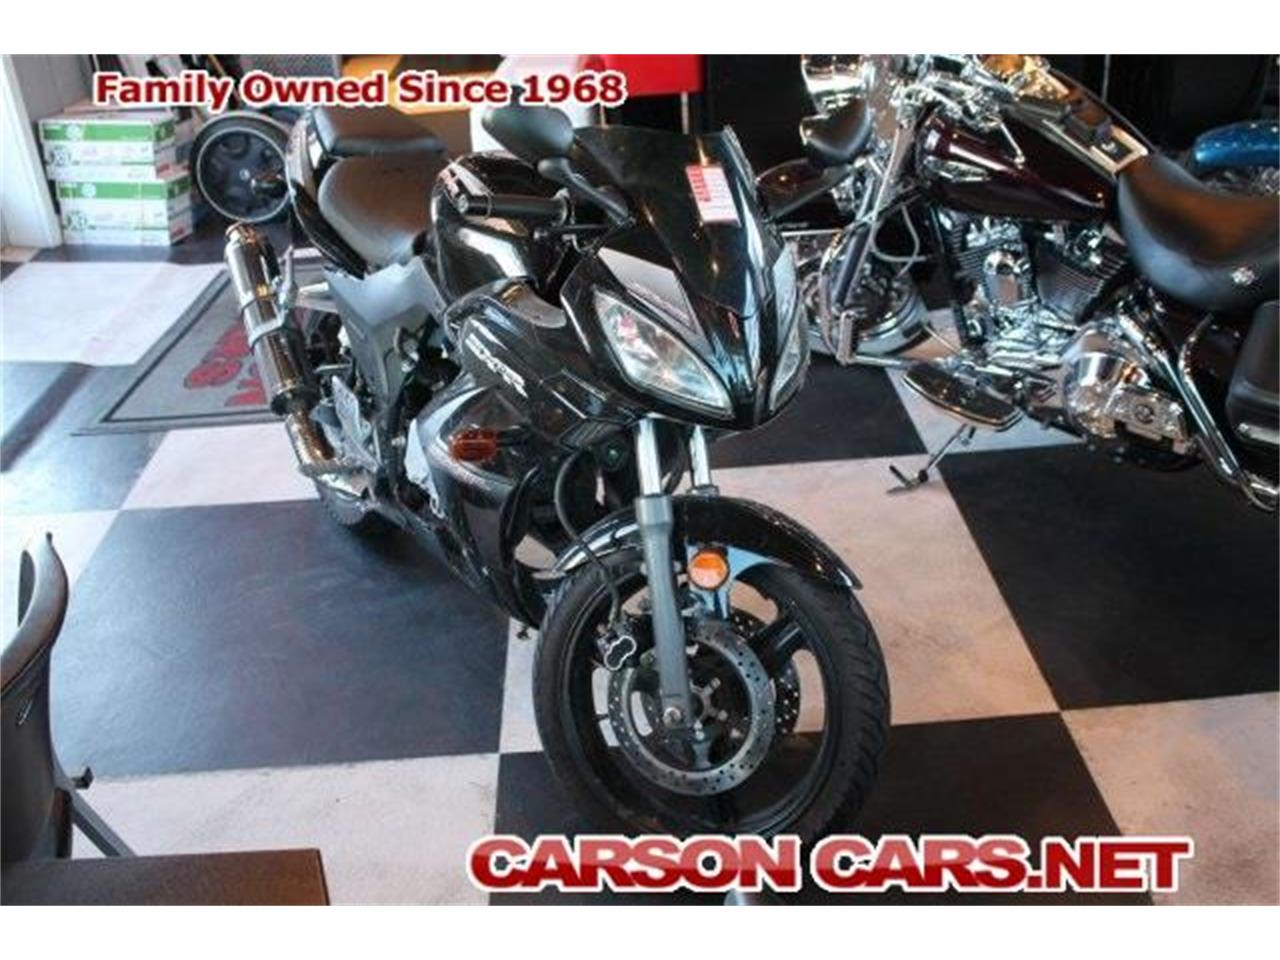 For Sale: 2011 DONGFANG SX-R 250 in Lynnwood, Washington